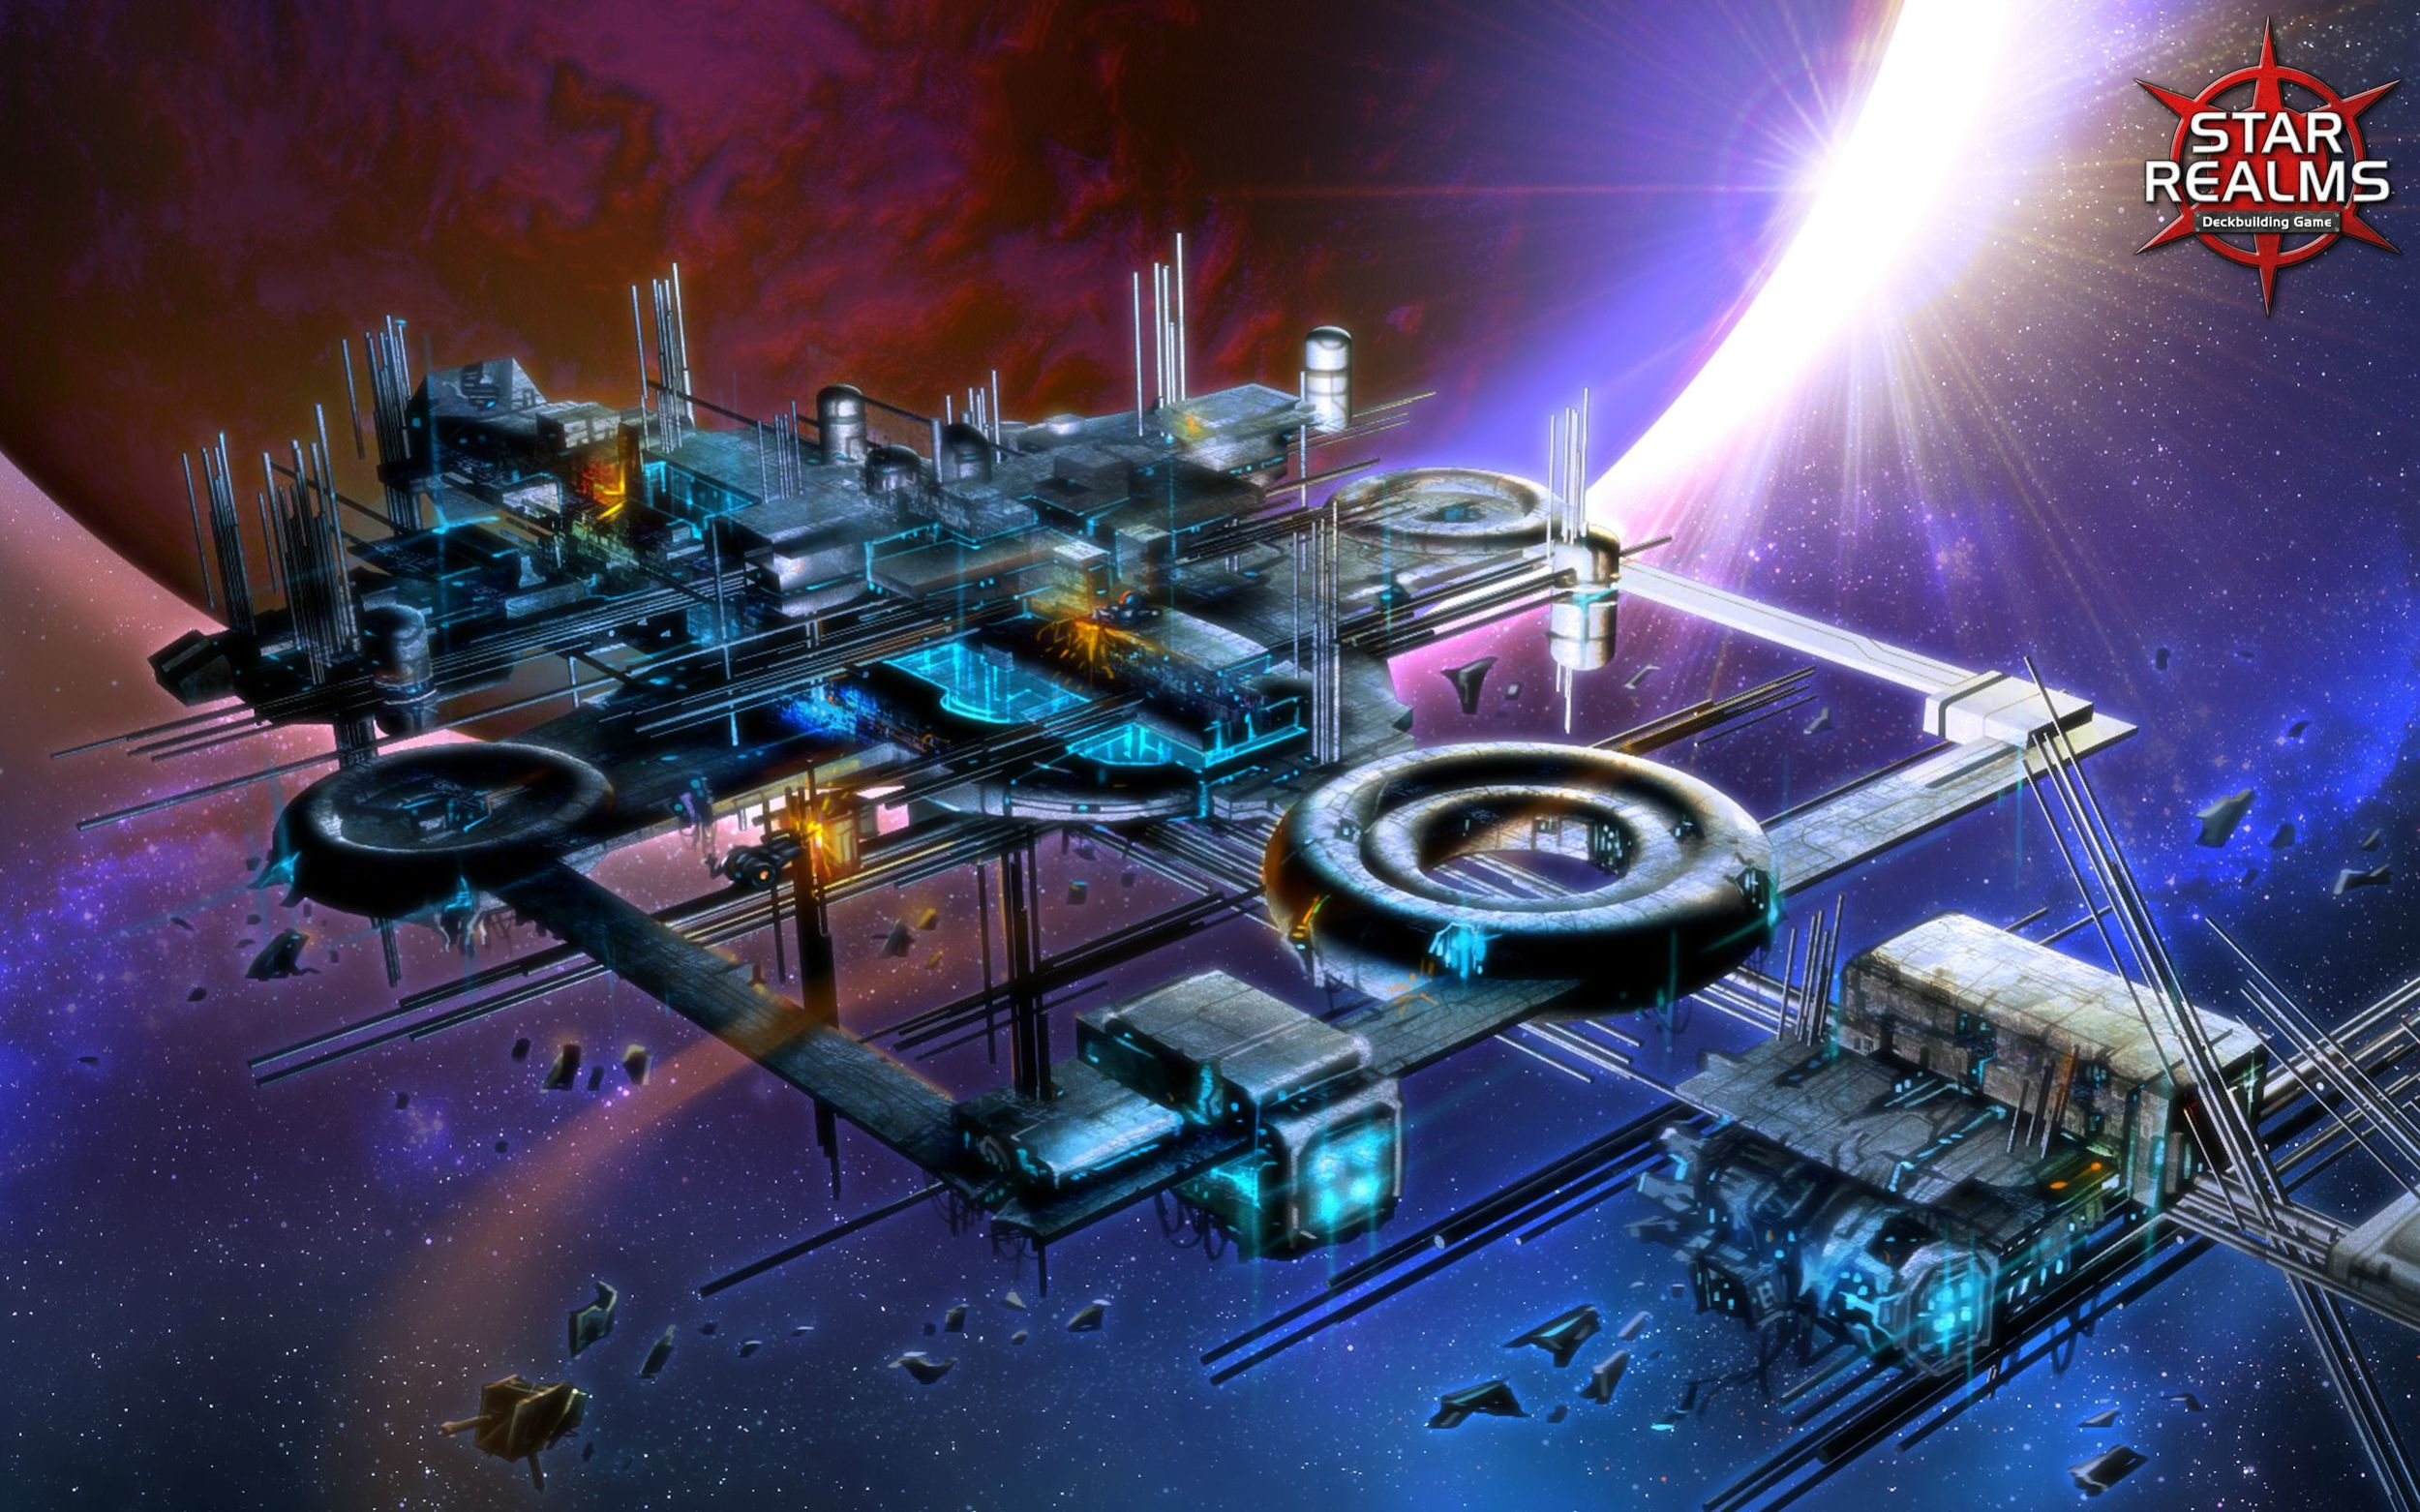 Star Realms is a vision of the future... a future with lots of lens flare.